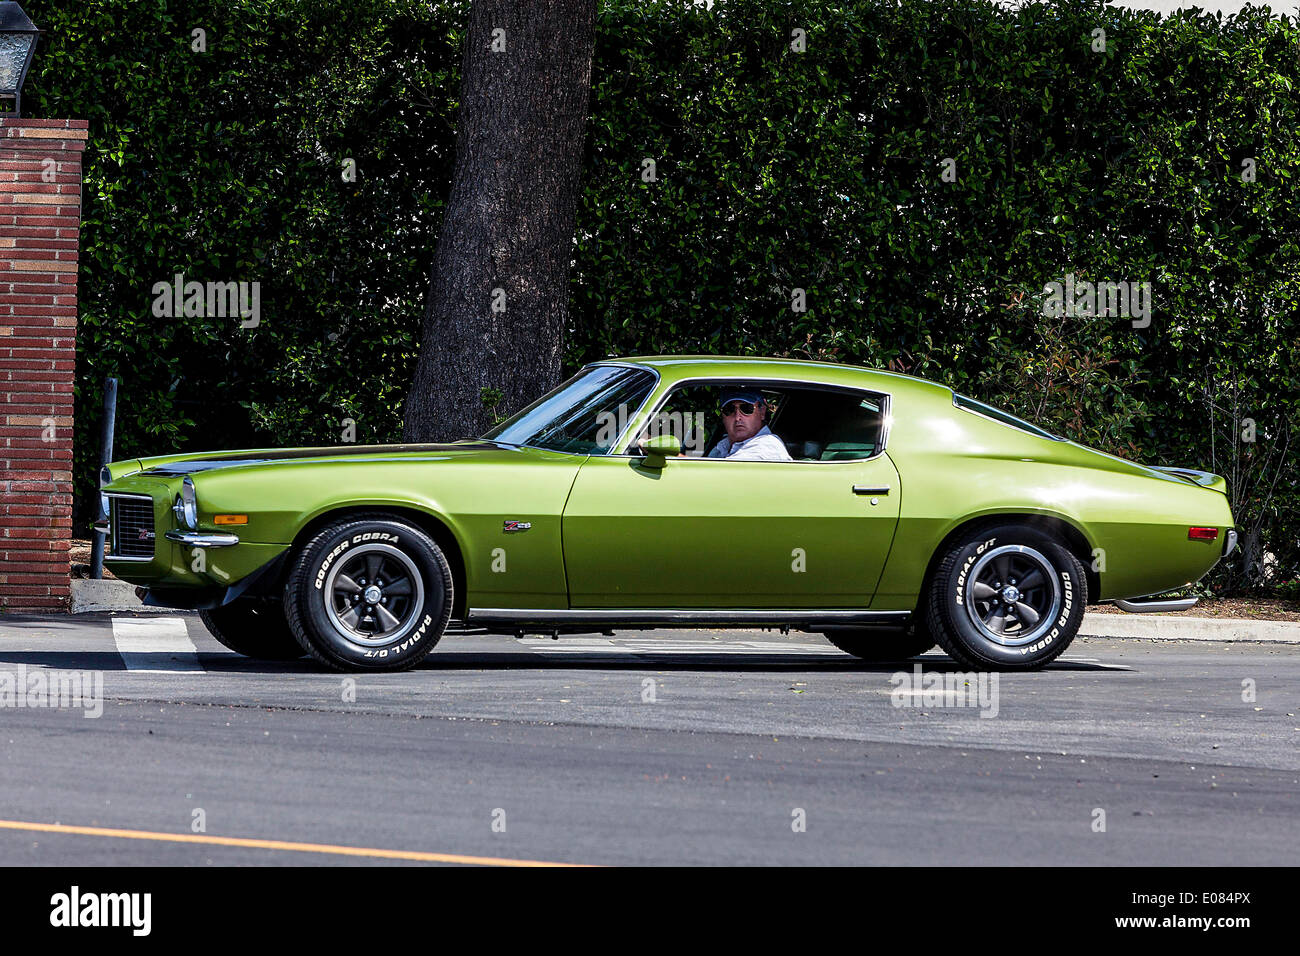 A 1970 Chevy Camaro Z28 Stock Photo Royalty Free Image